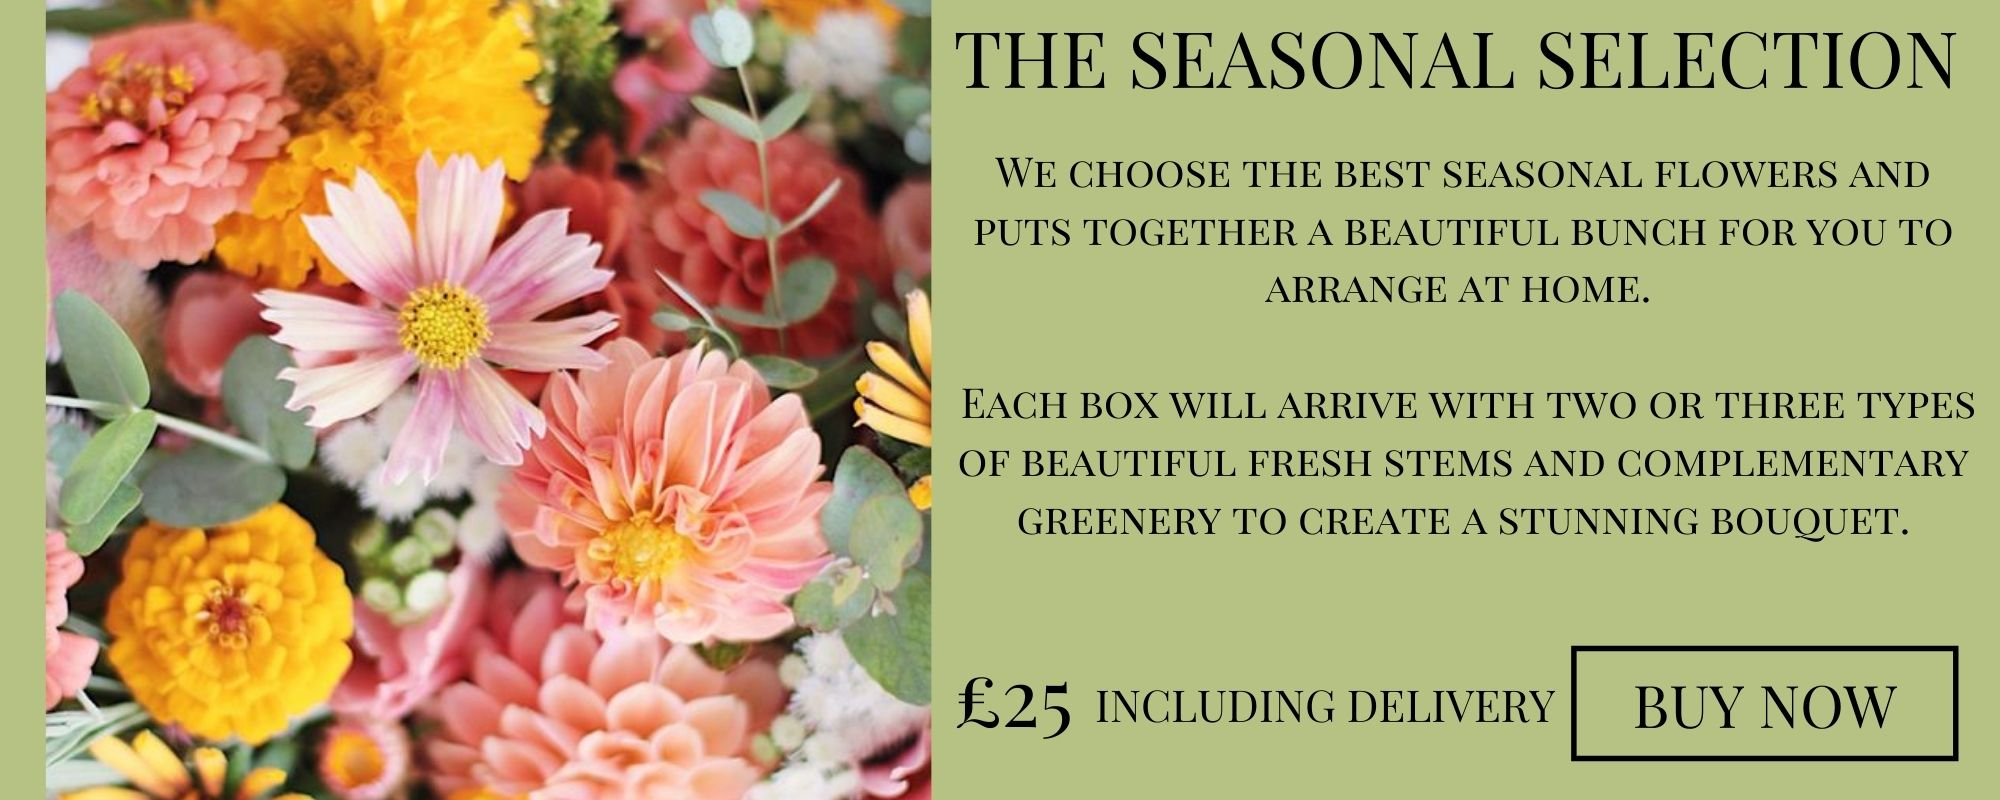 The Seasonal Flower Subscription